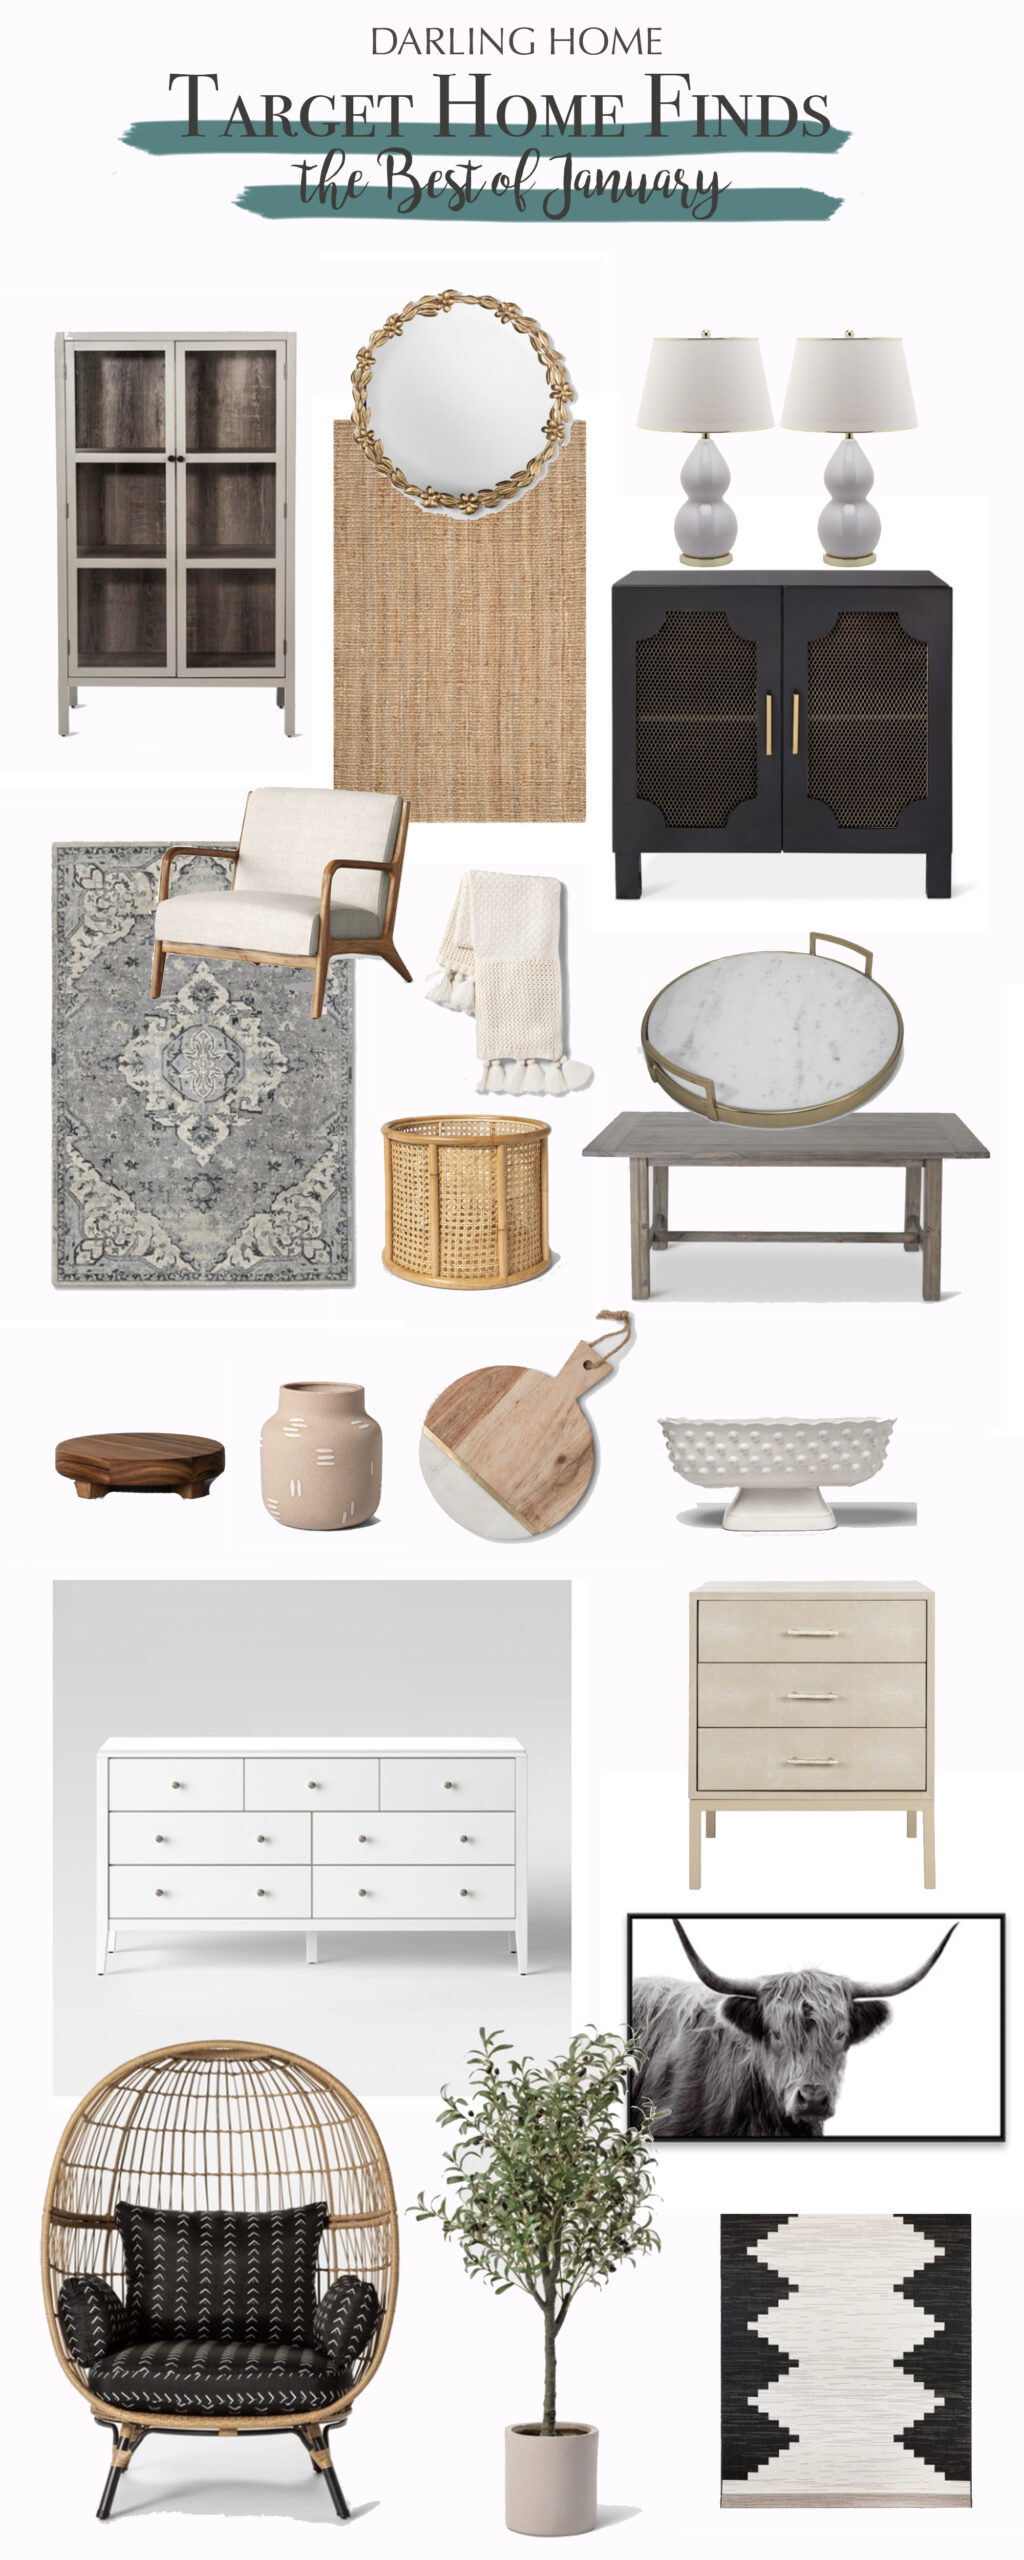 Sharing my favorite Target Home Finds for this month! They are the best of the best!  #targethome #targetstyles || Darling Darleen Top CT Lifestyle Blogger